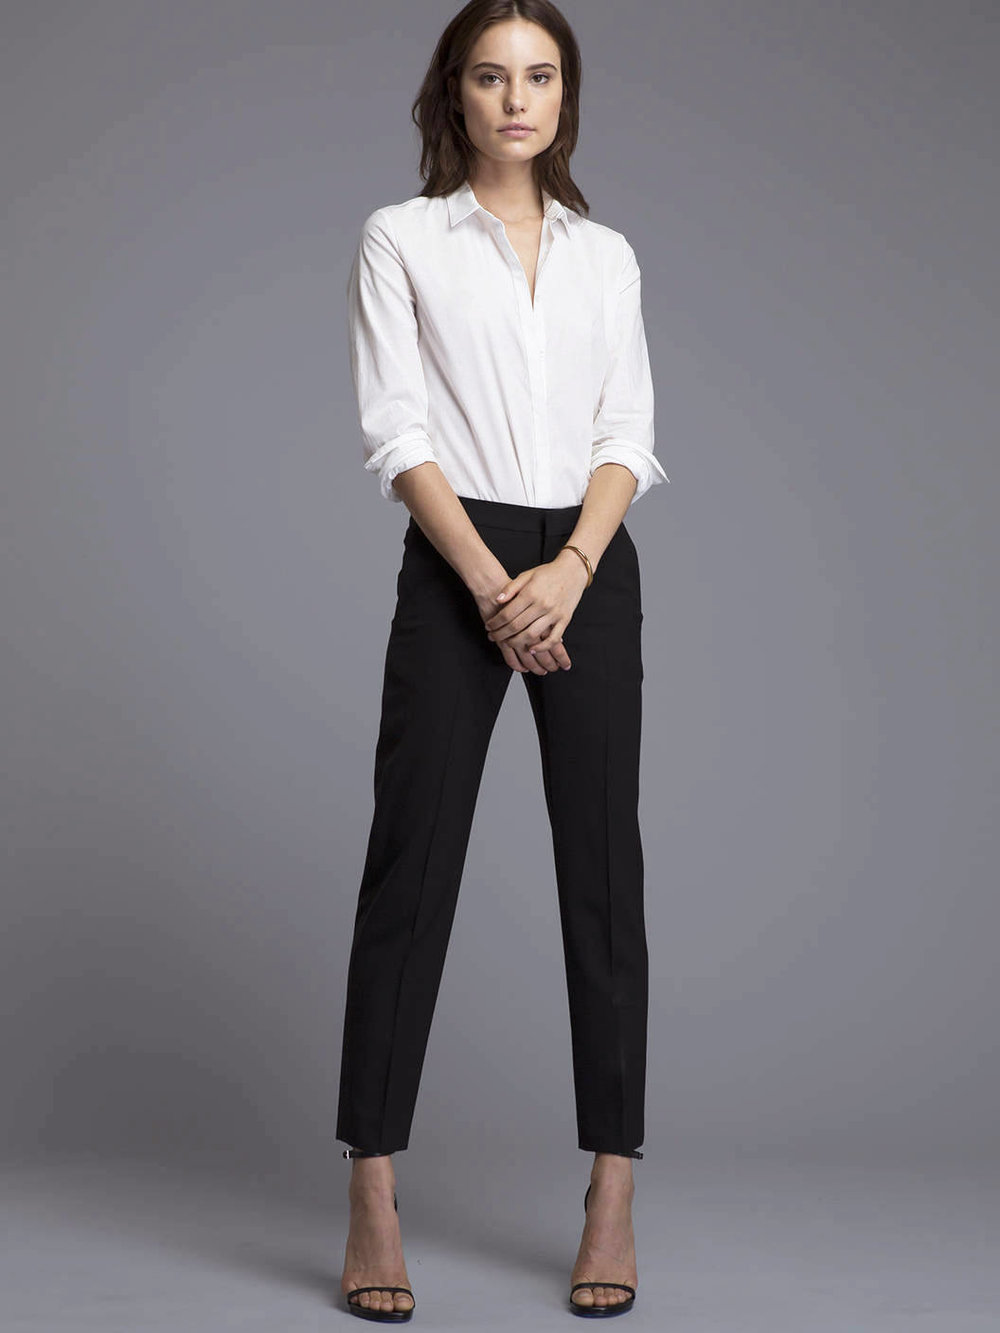 Zady: Organic Cotton Voile Shirt - Shop at Zady.com